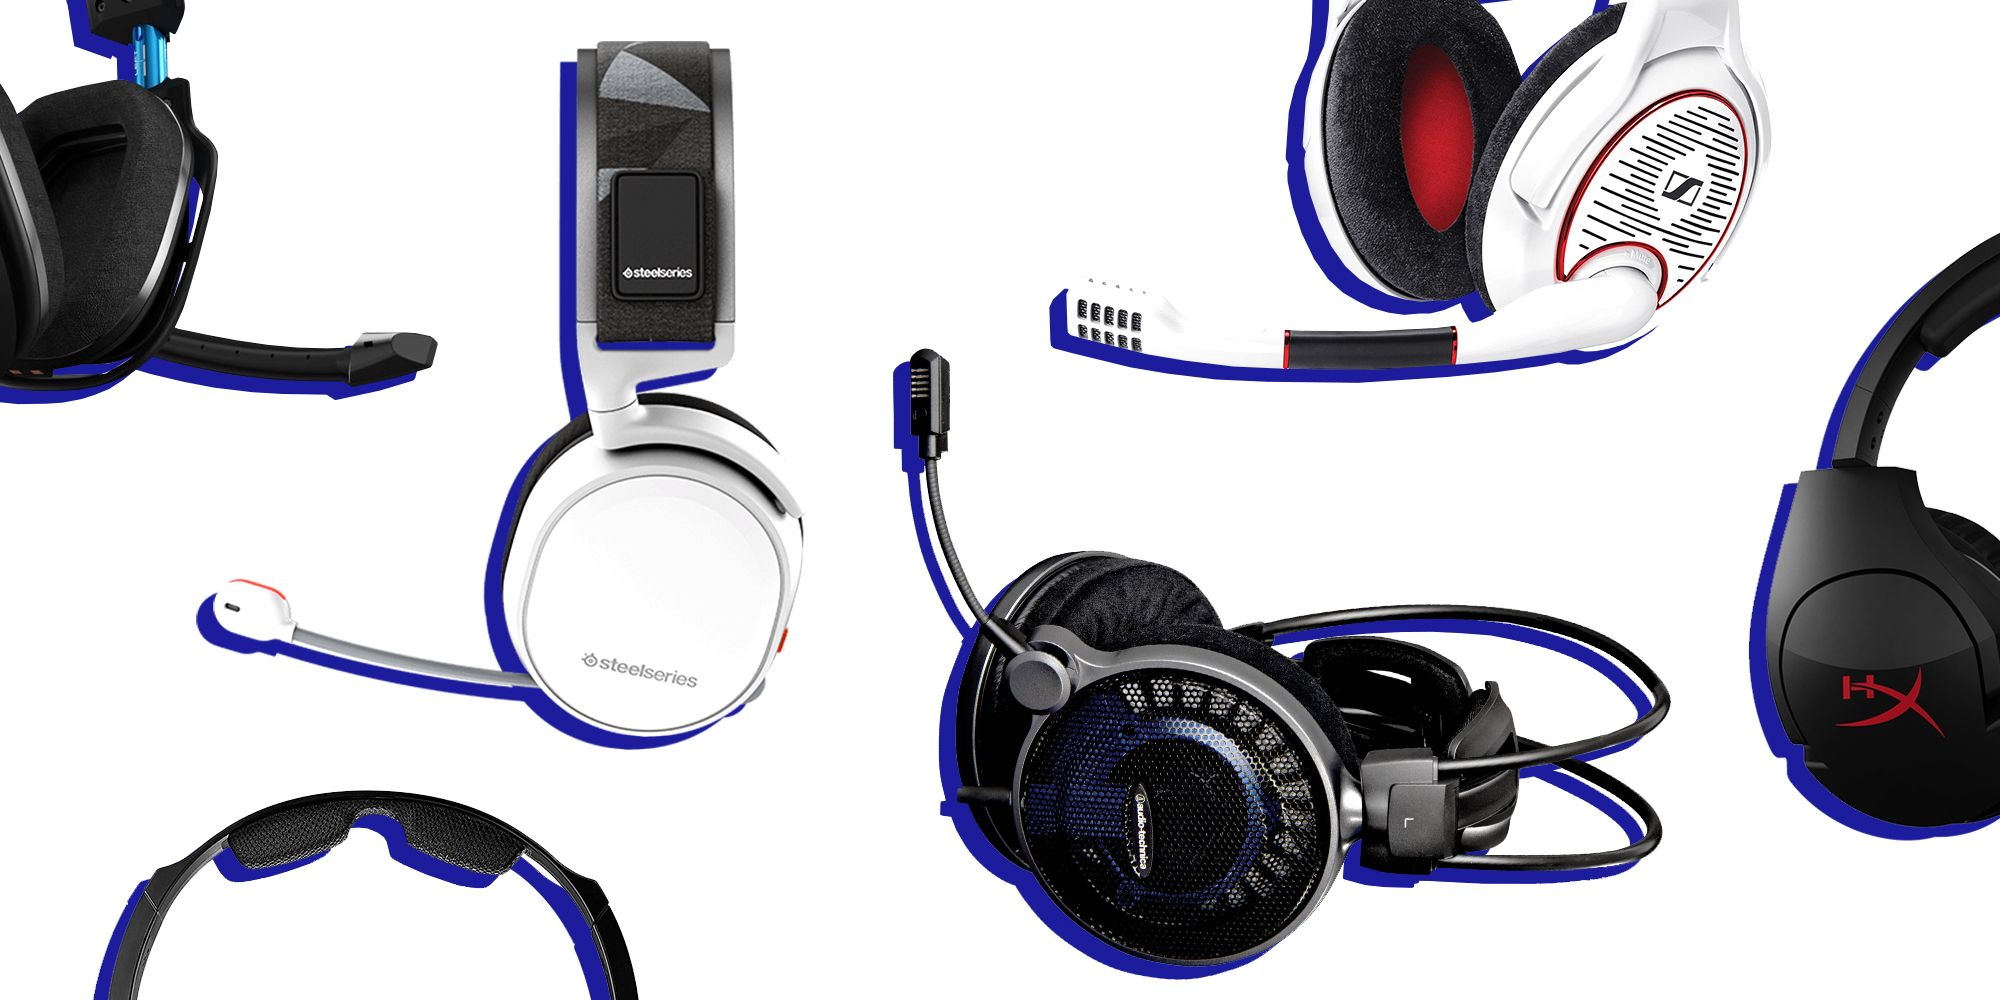 The 8 Best Gaming Headsets in 2018 - Gaming Headsets for PS4, PC ...